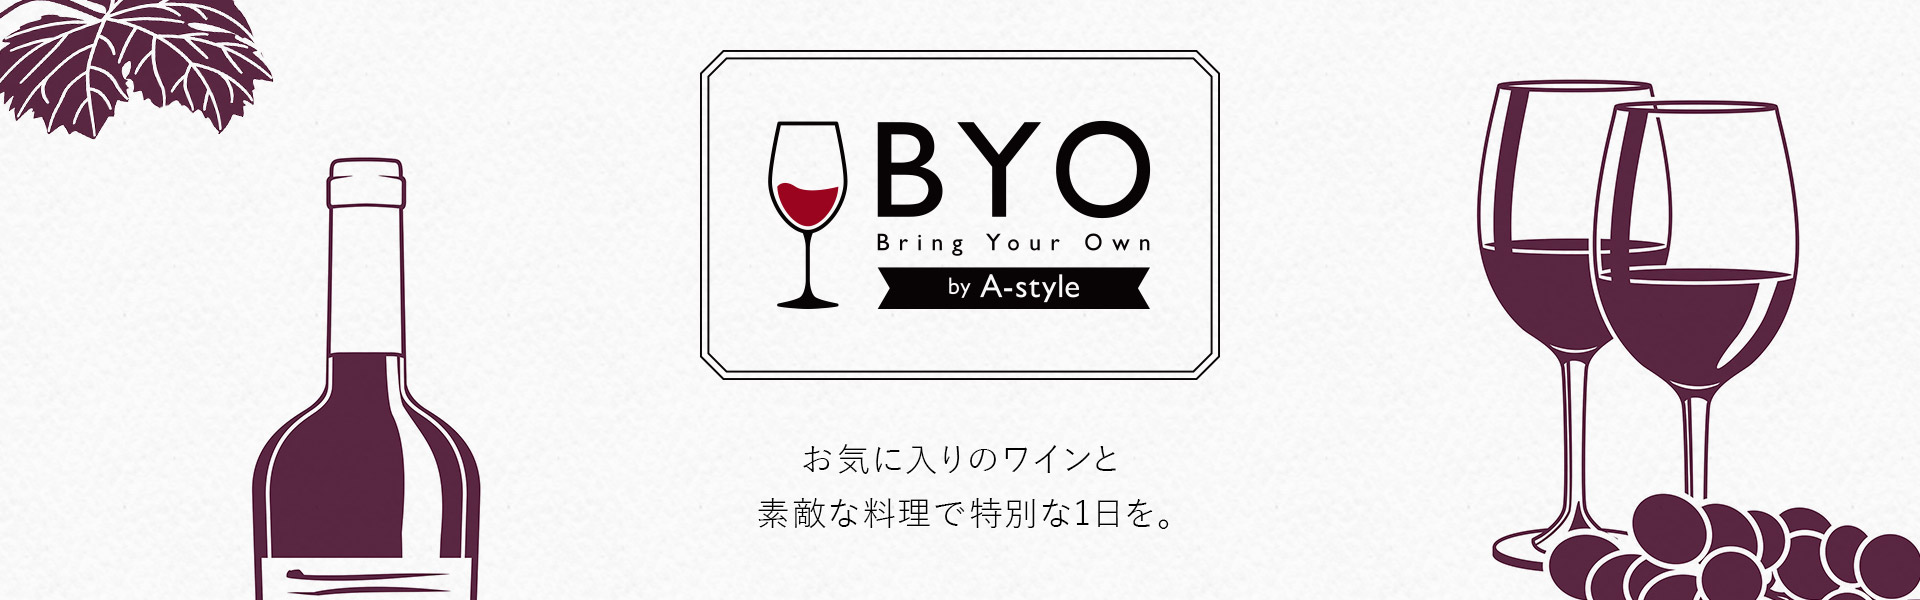 BYO(Bring Your Own)by A-style お気に入りのワインと素敵な料理で特別な1日を。